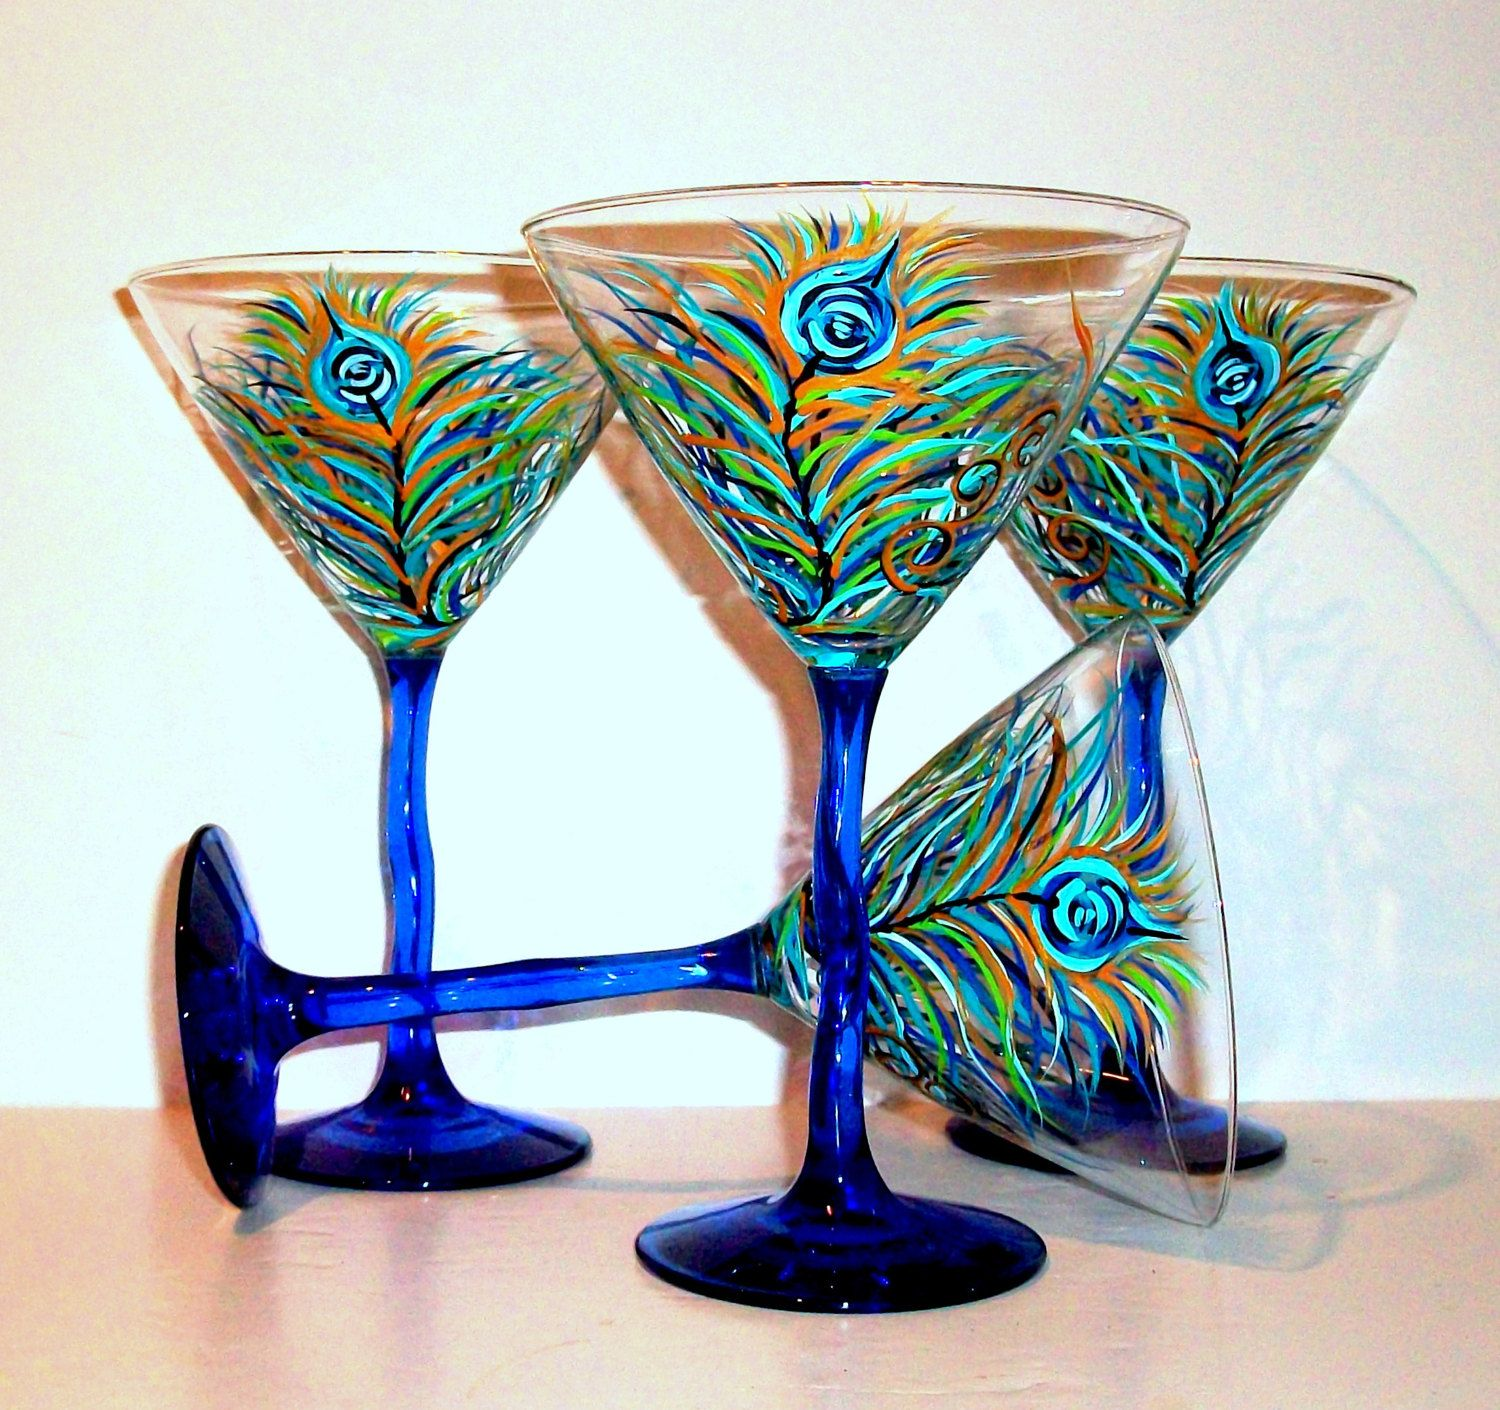 Pea Feathers Martini Gles Cobalt Blue Stem Wedding Anniversary Birthday Gift Set Of 4 12 Oz Hand Painted Glware By